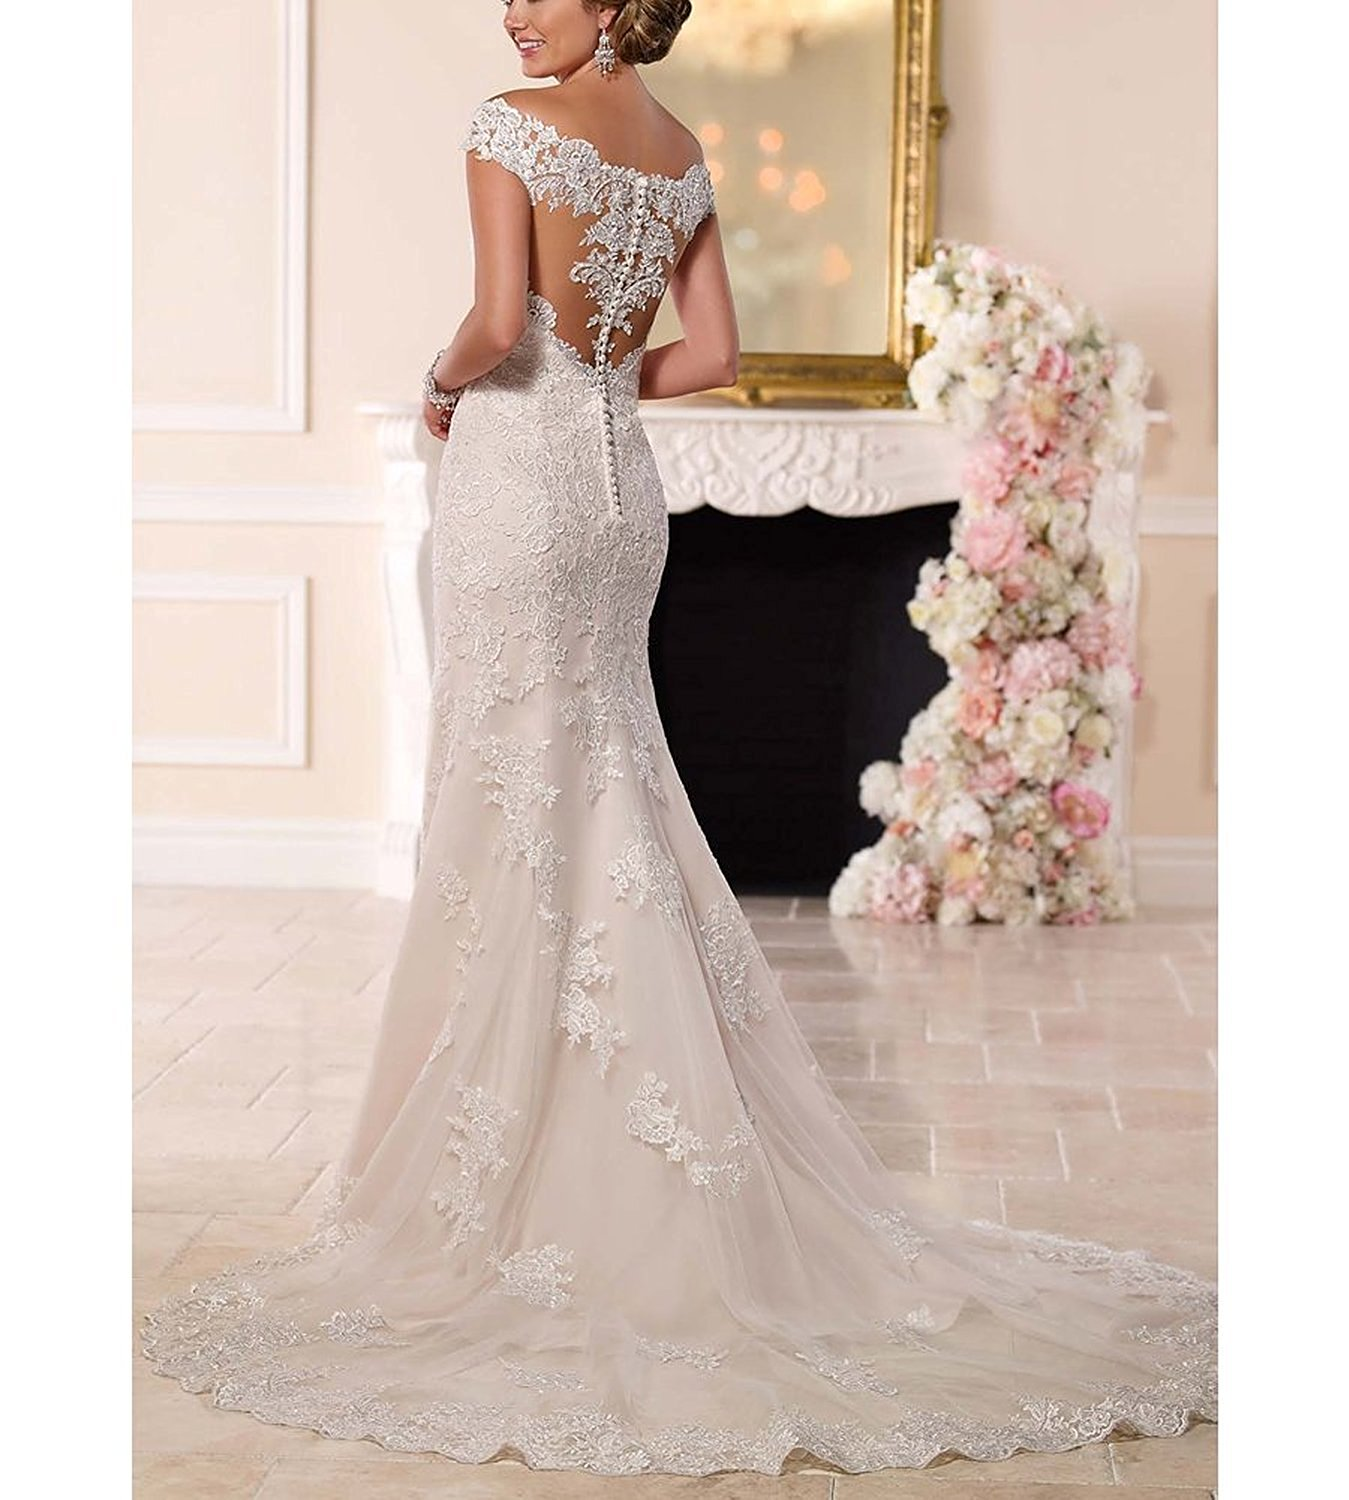 Sweetheart Off The Shoulder Mermaid Wedding Dress Cute